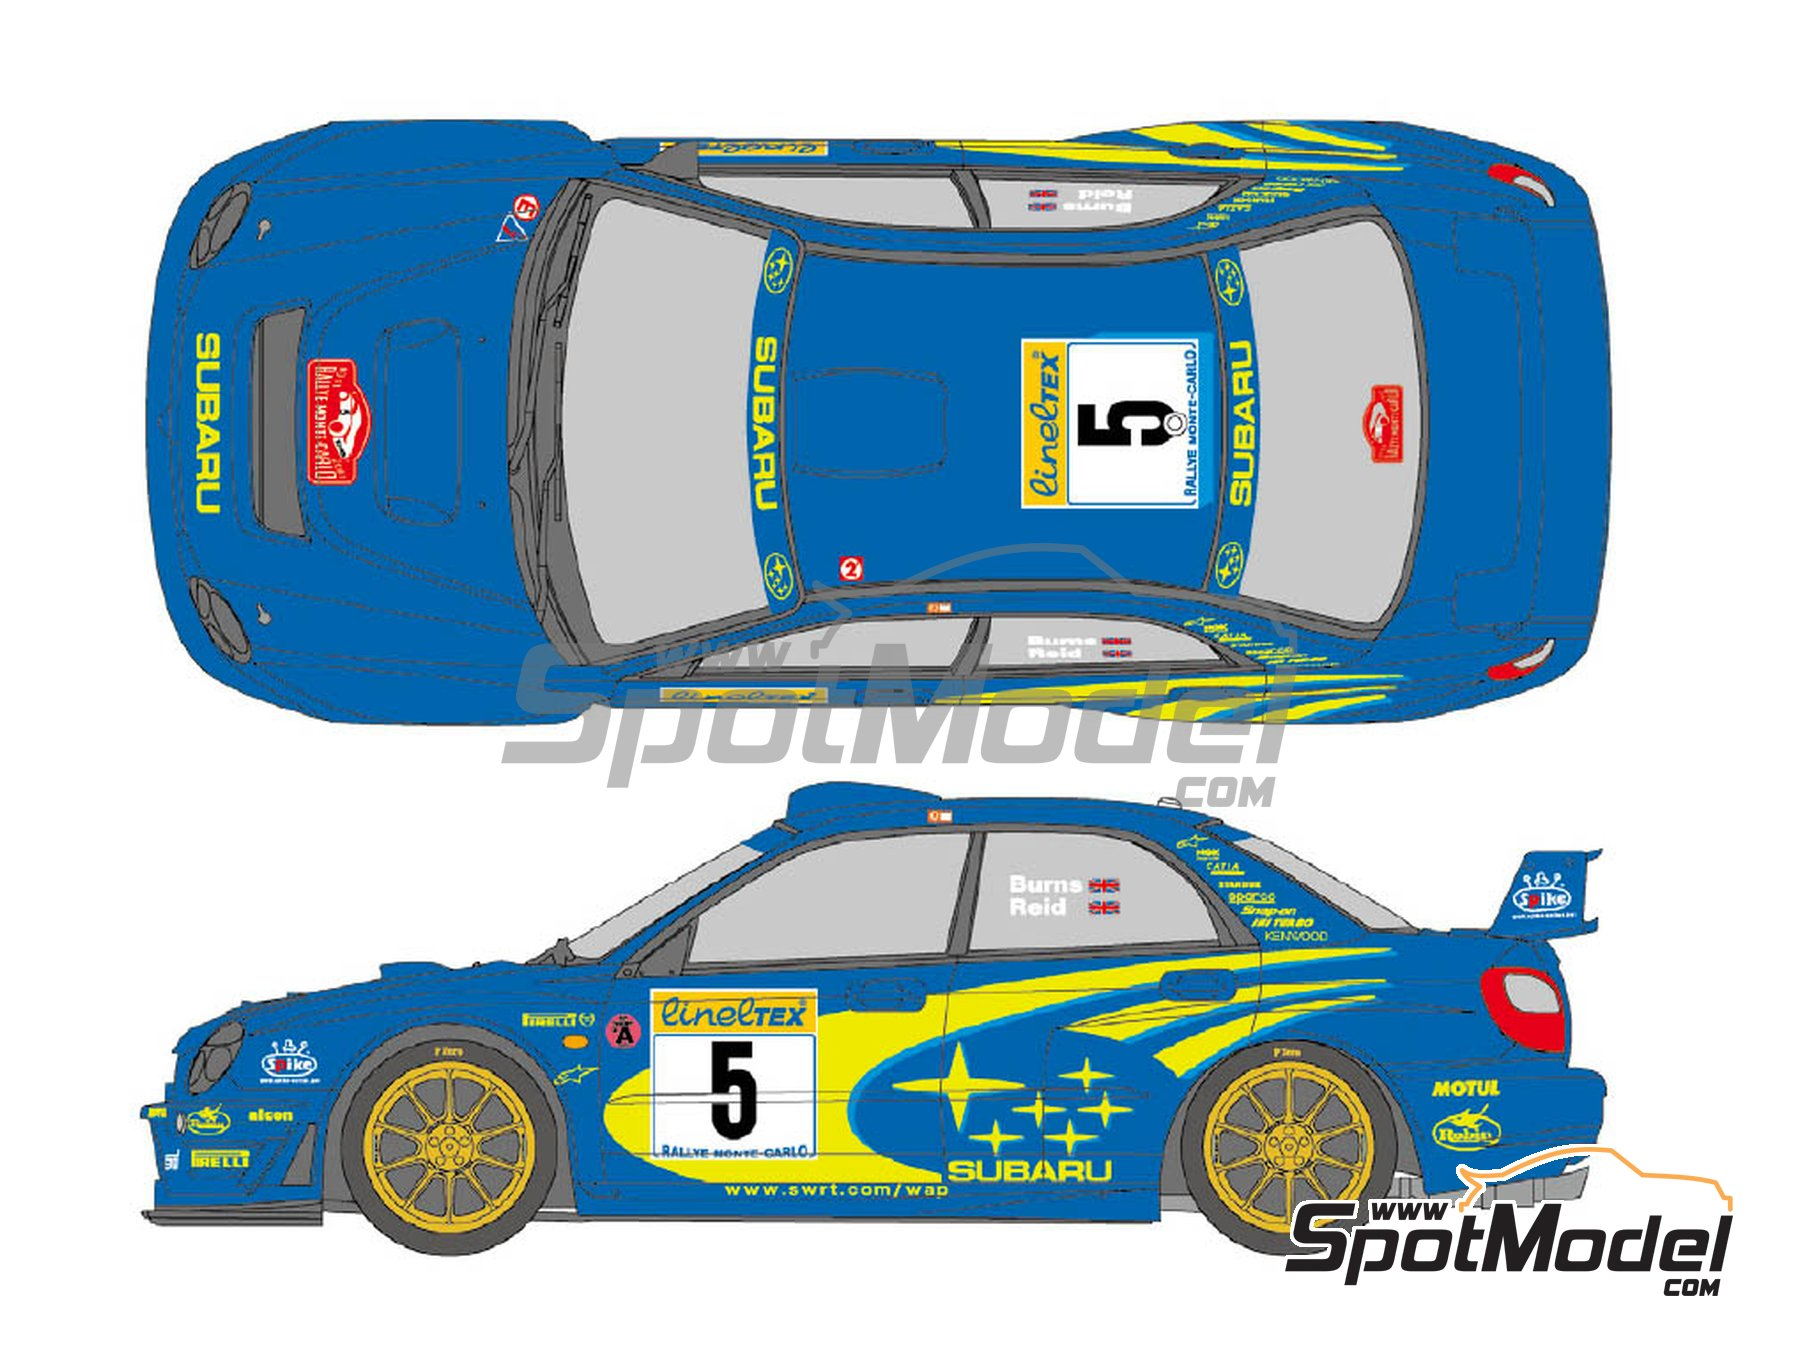 Image 1: Subaru Impreza WRC Works Team Impreza - Montecarlo Rally 2001 | Marking / livery in 1/24 scale manufactured by Shunko Models (ref. SHK-D341)